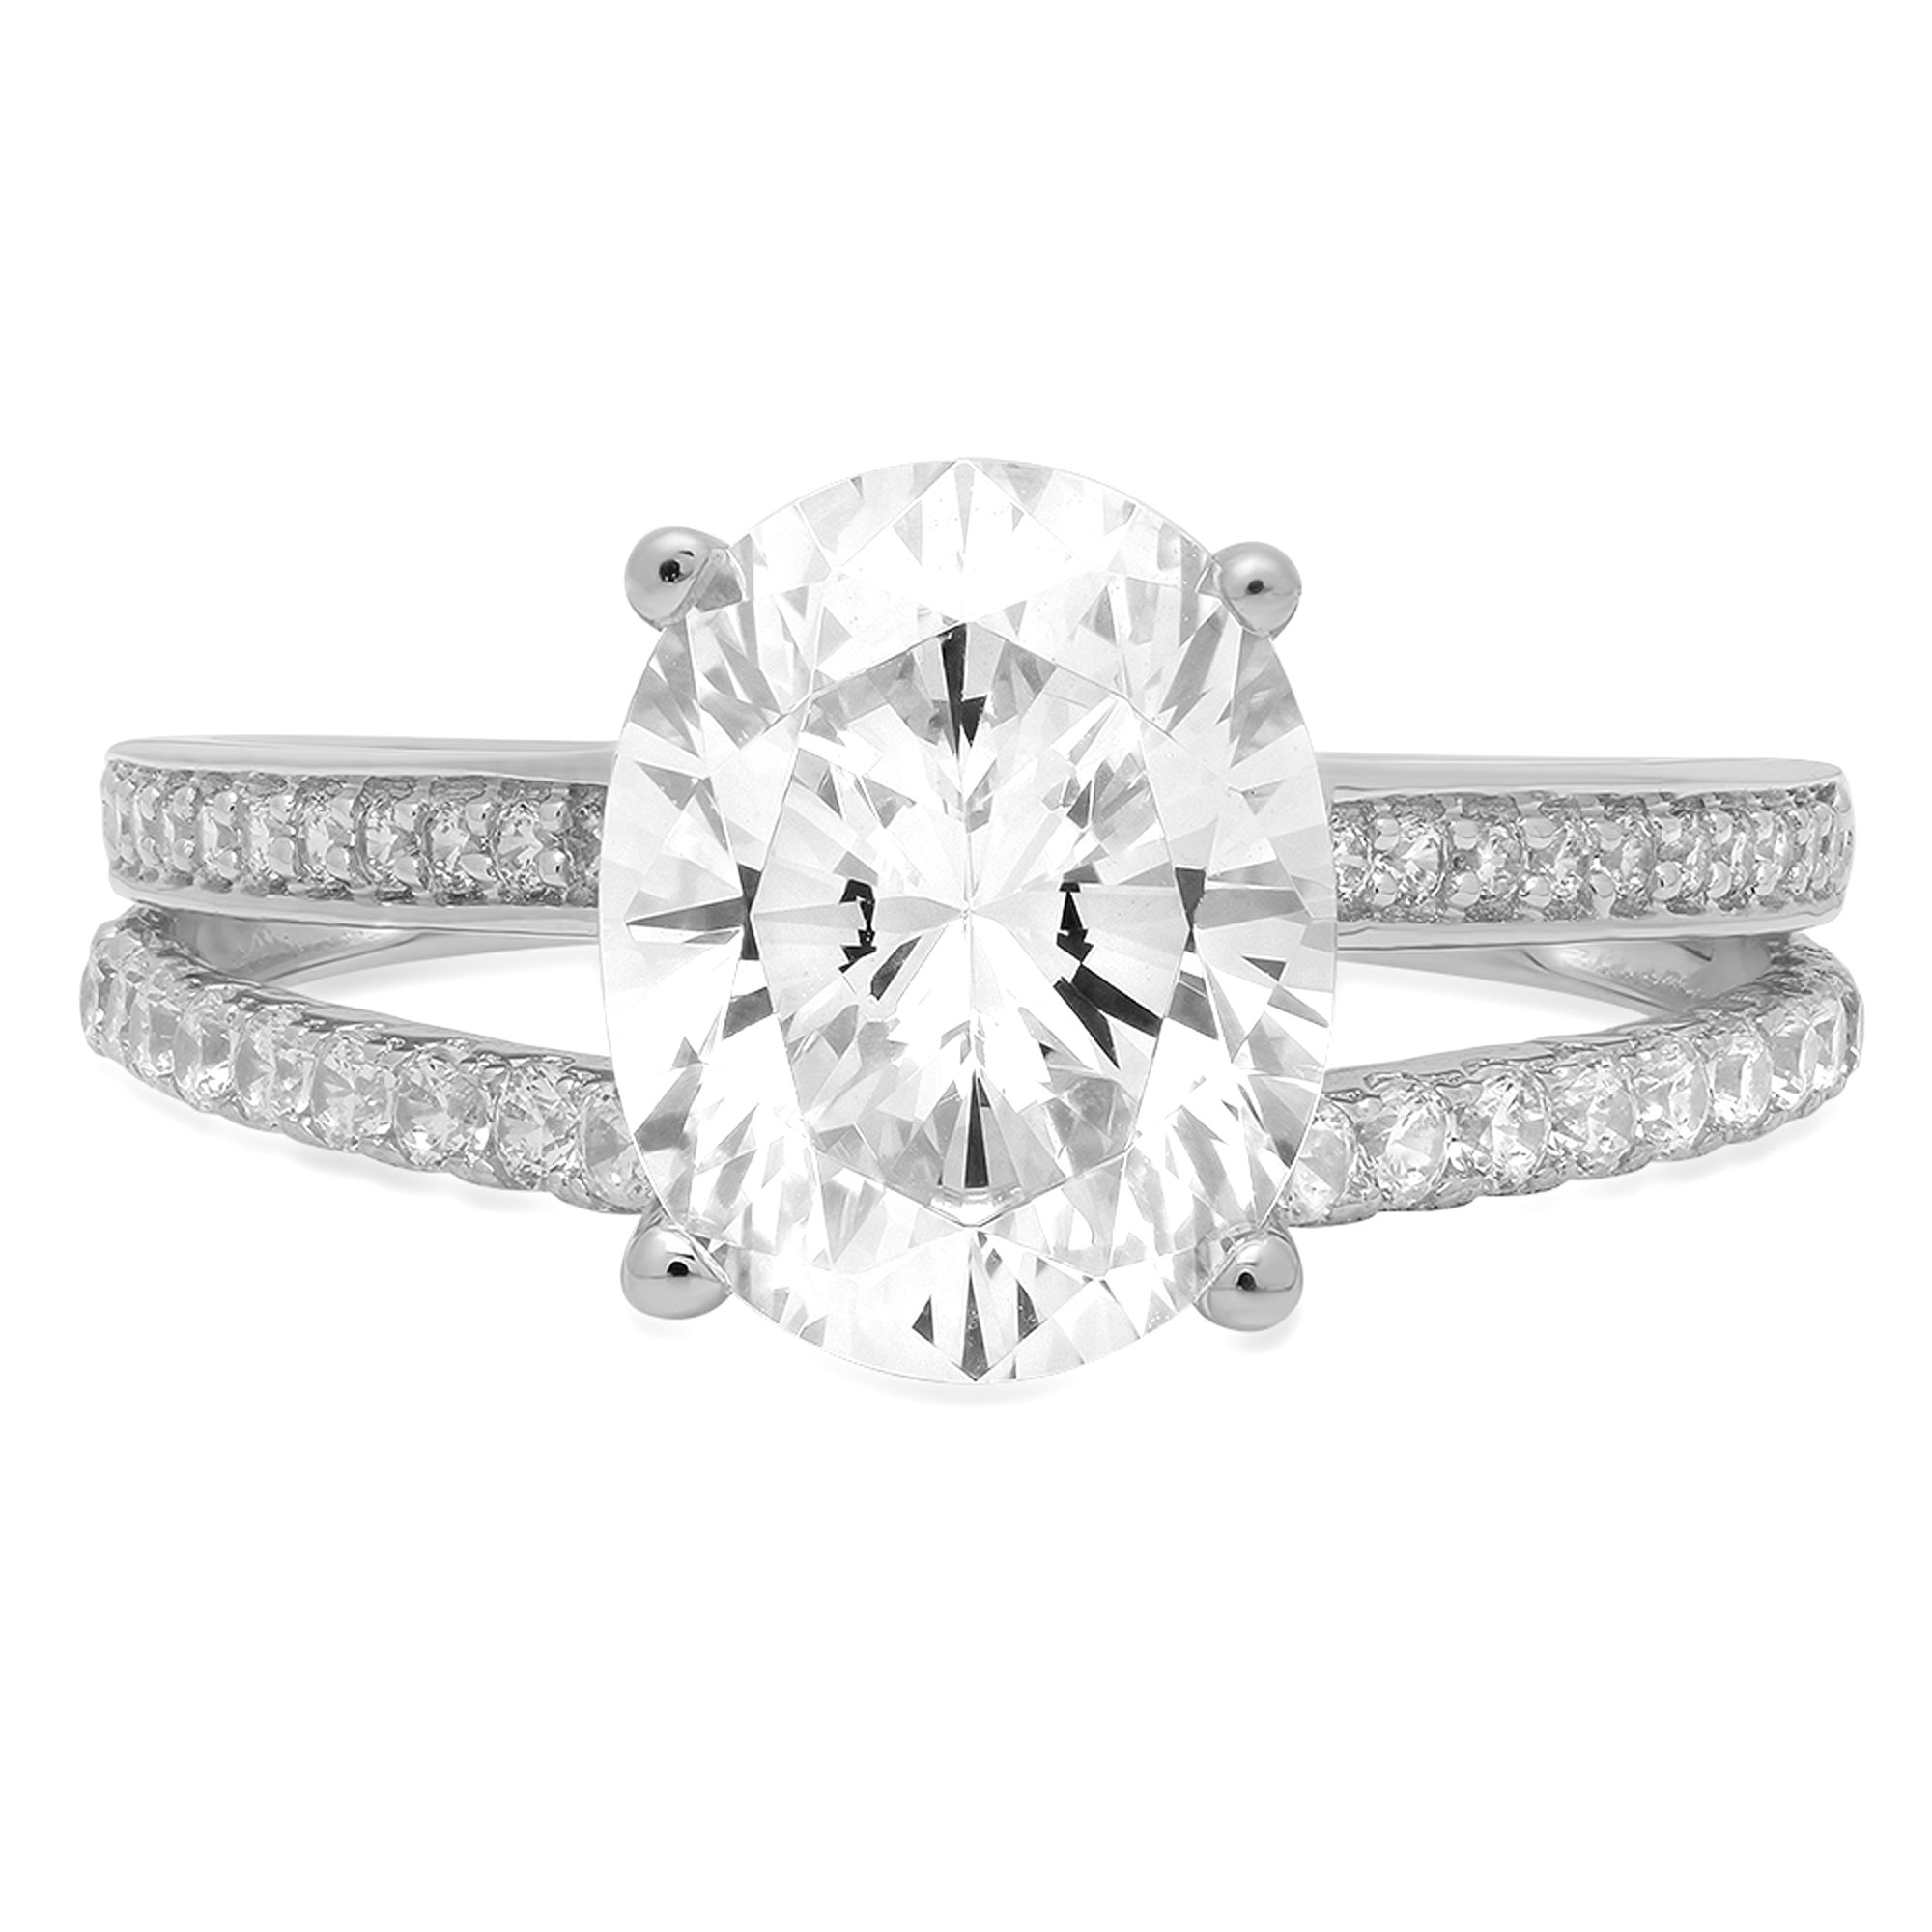 2.2ct Brilliant Oval Cut Simulated Diamond Solitaire Statement Ring Jewelry in Solid 14K White Gold for Women, 4.25